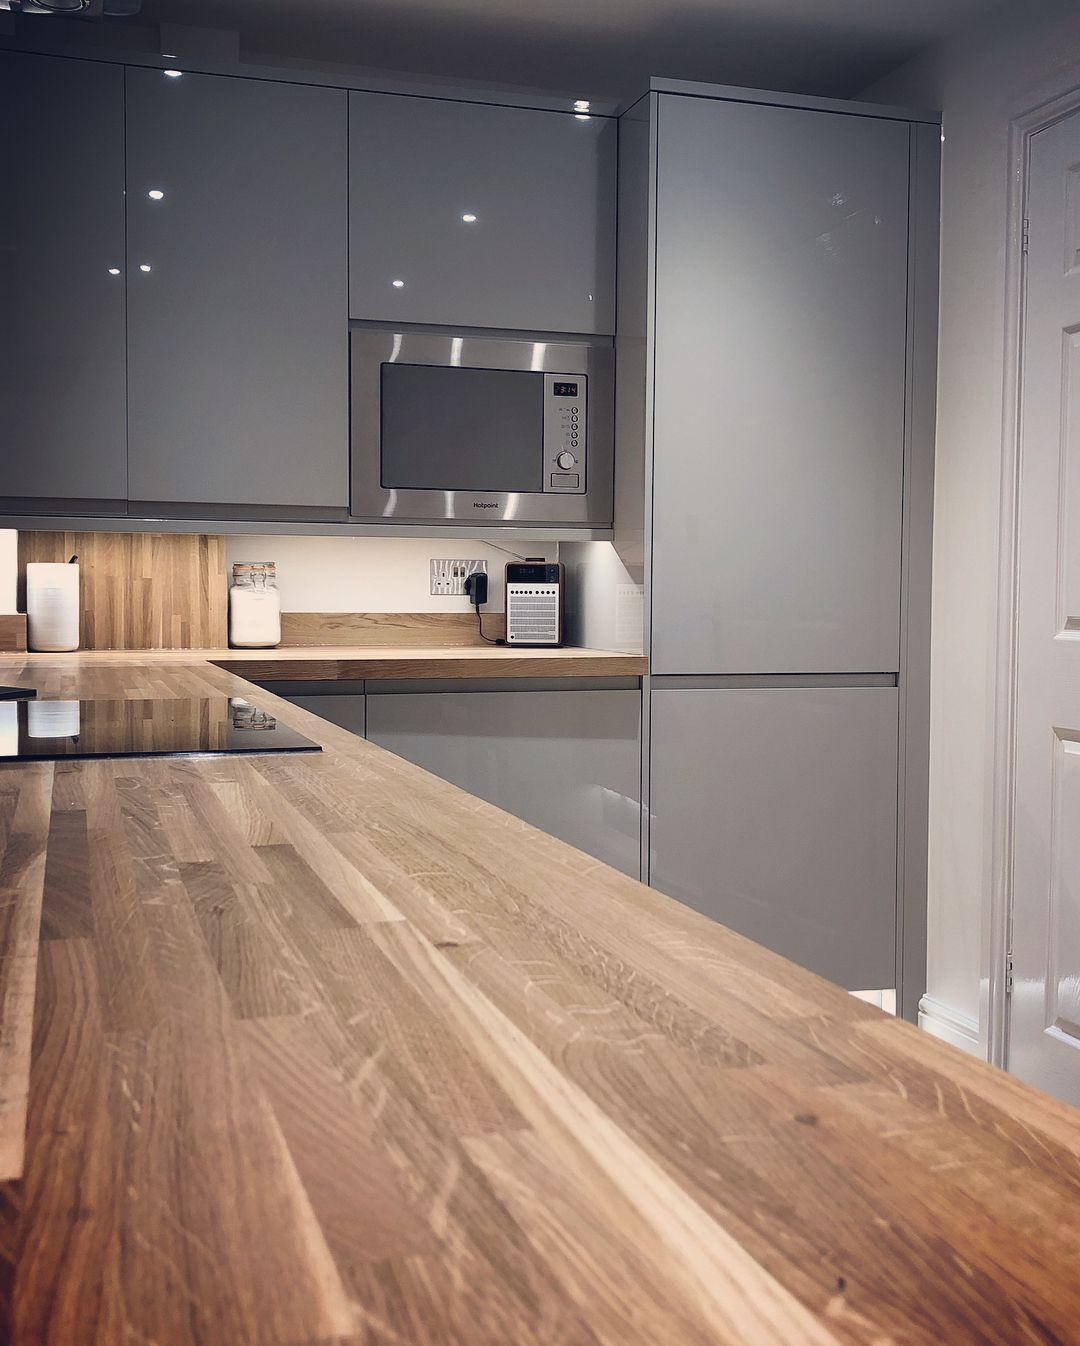 Latest Kitchen Designs Mixer Machine 25 Breathtaking Industrial Ideas You Have To See Modern A Handle Less With Wooden Worktop And High Gloss Cabinets